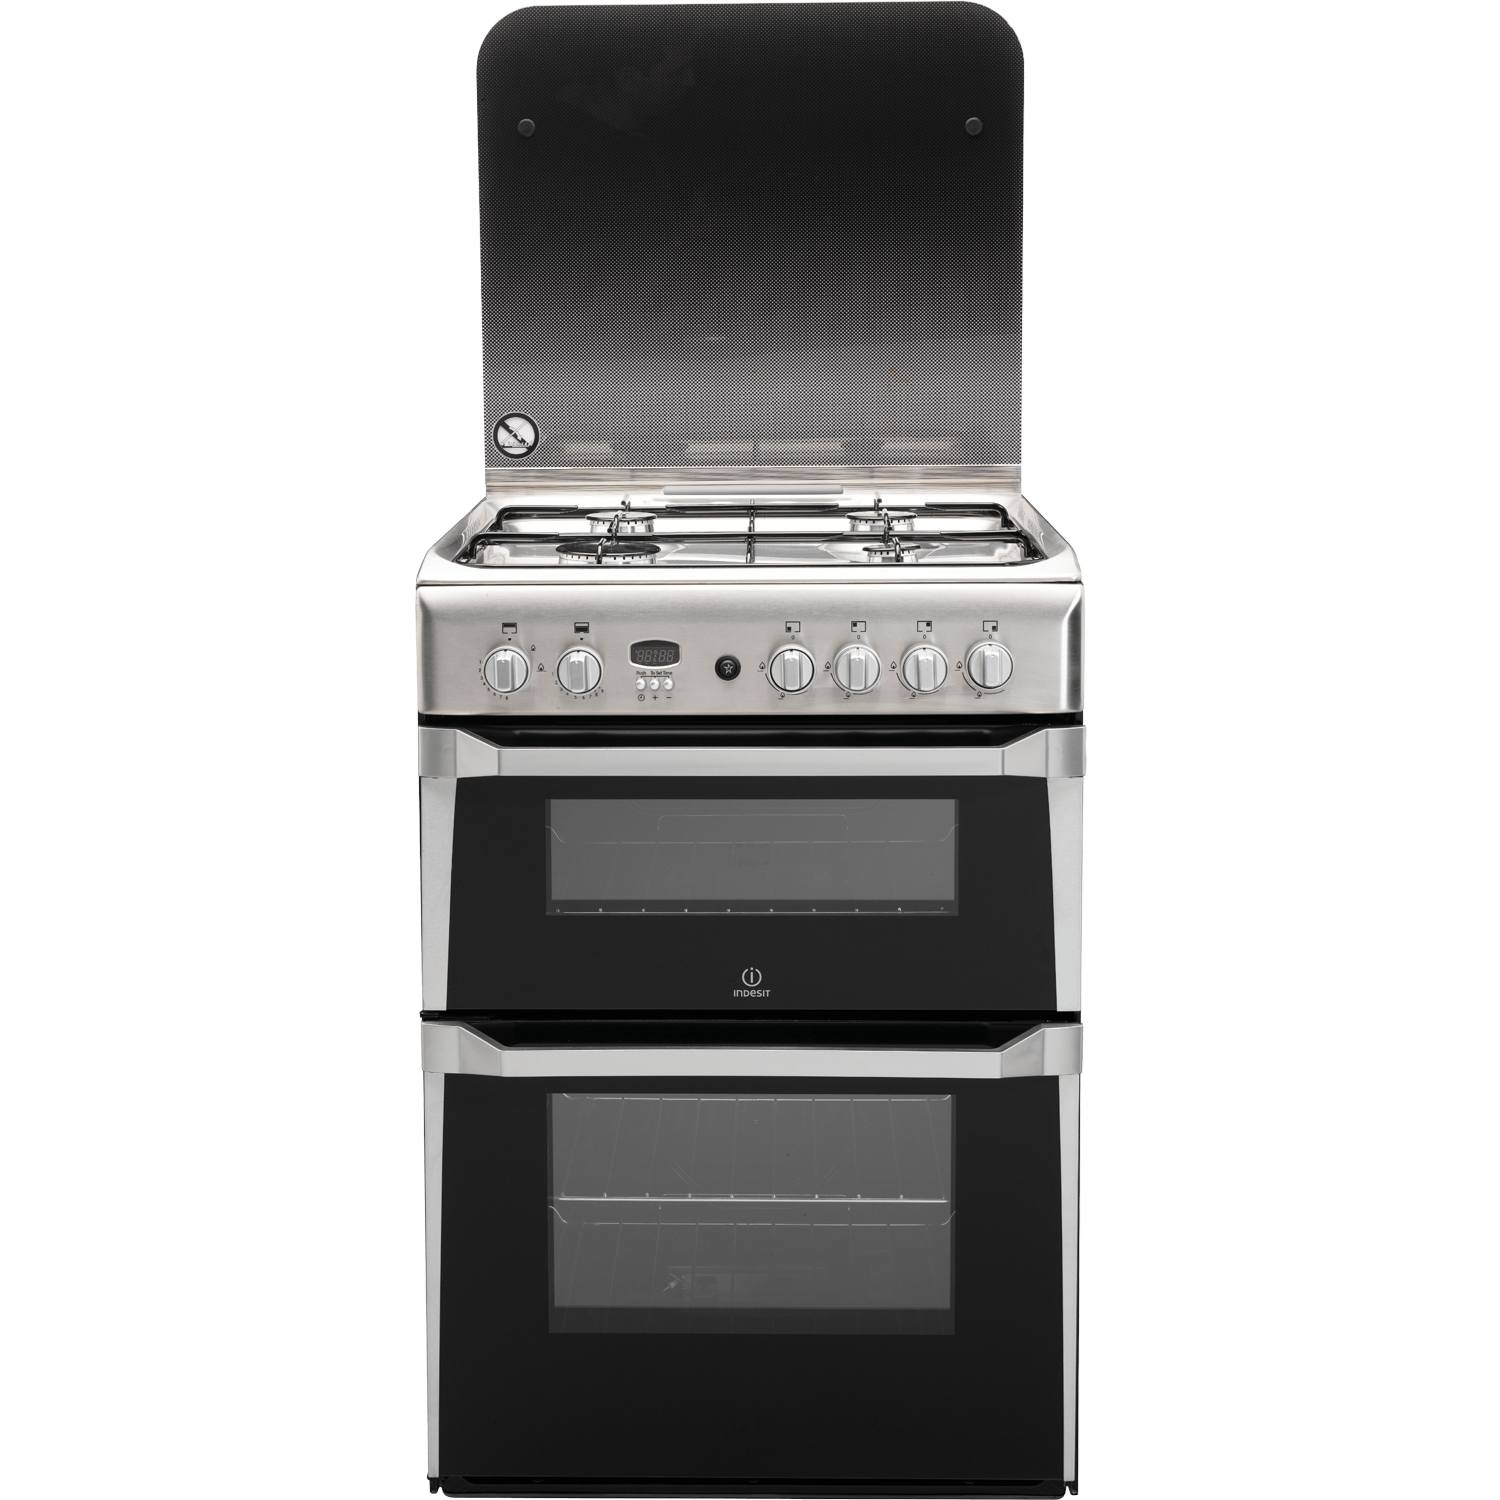 indesit id60g2x 60cm freestanding double oven gas cooker. Black Bedroom Furniture Sets. Home Design Ideas